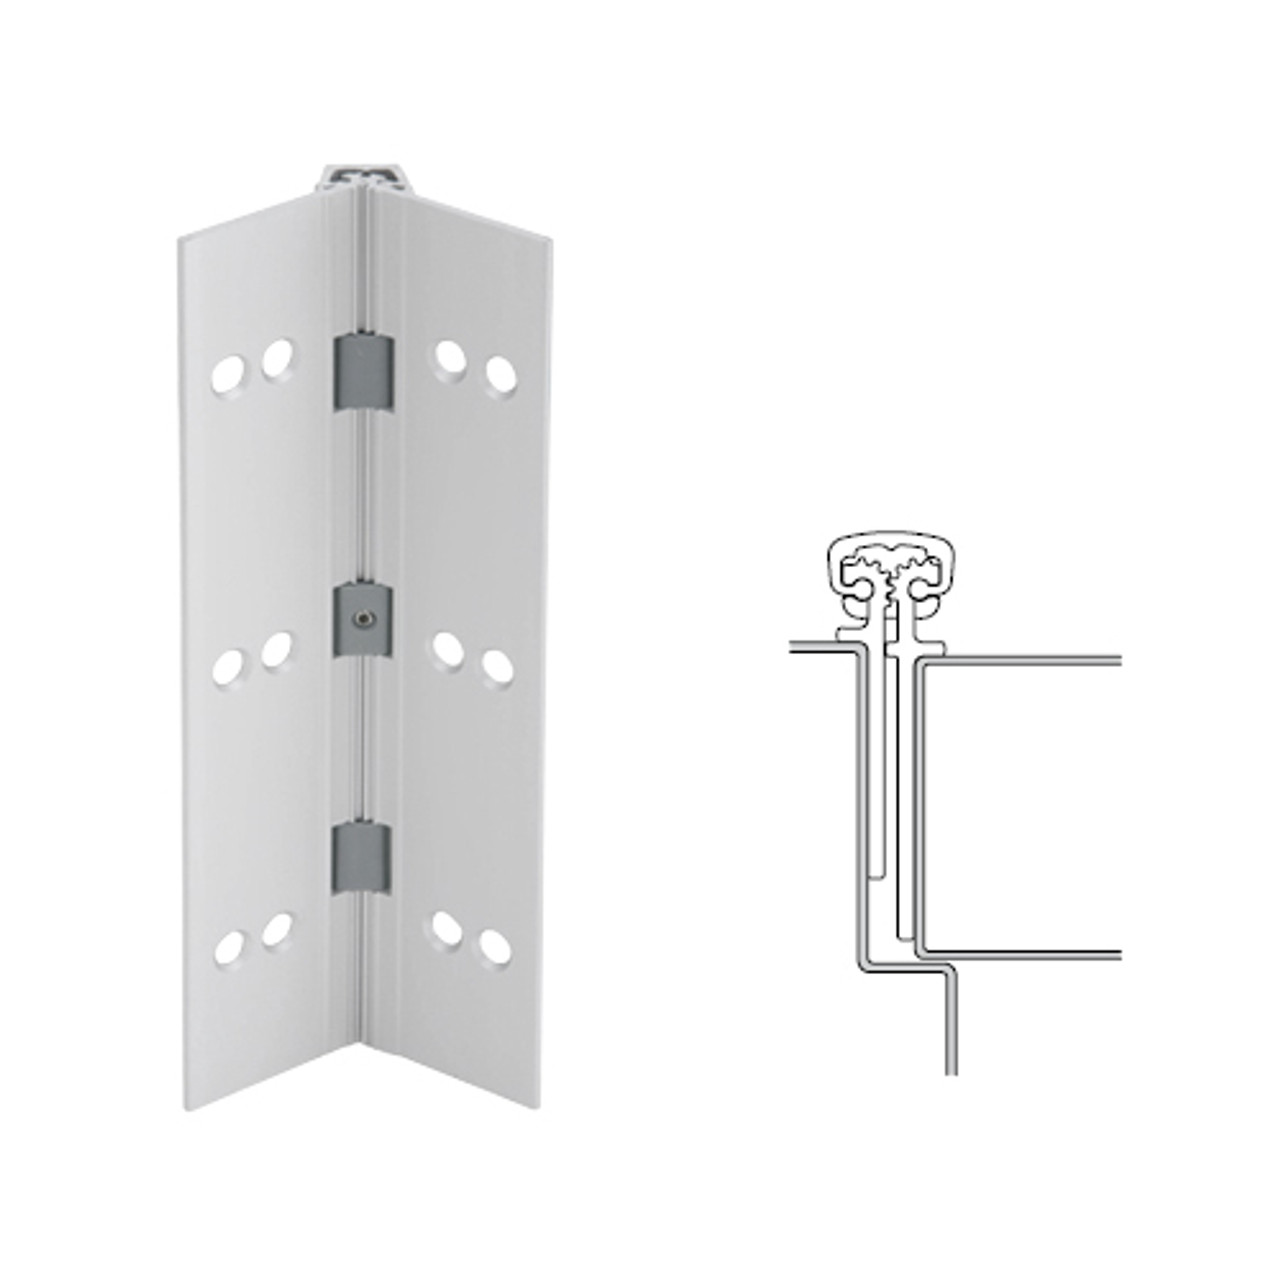 026XY-US28-83-TEKWD IVES Full Mortise Continuous Geared Hinges with Wood Screws in Satin Aluminum